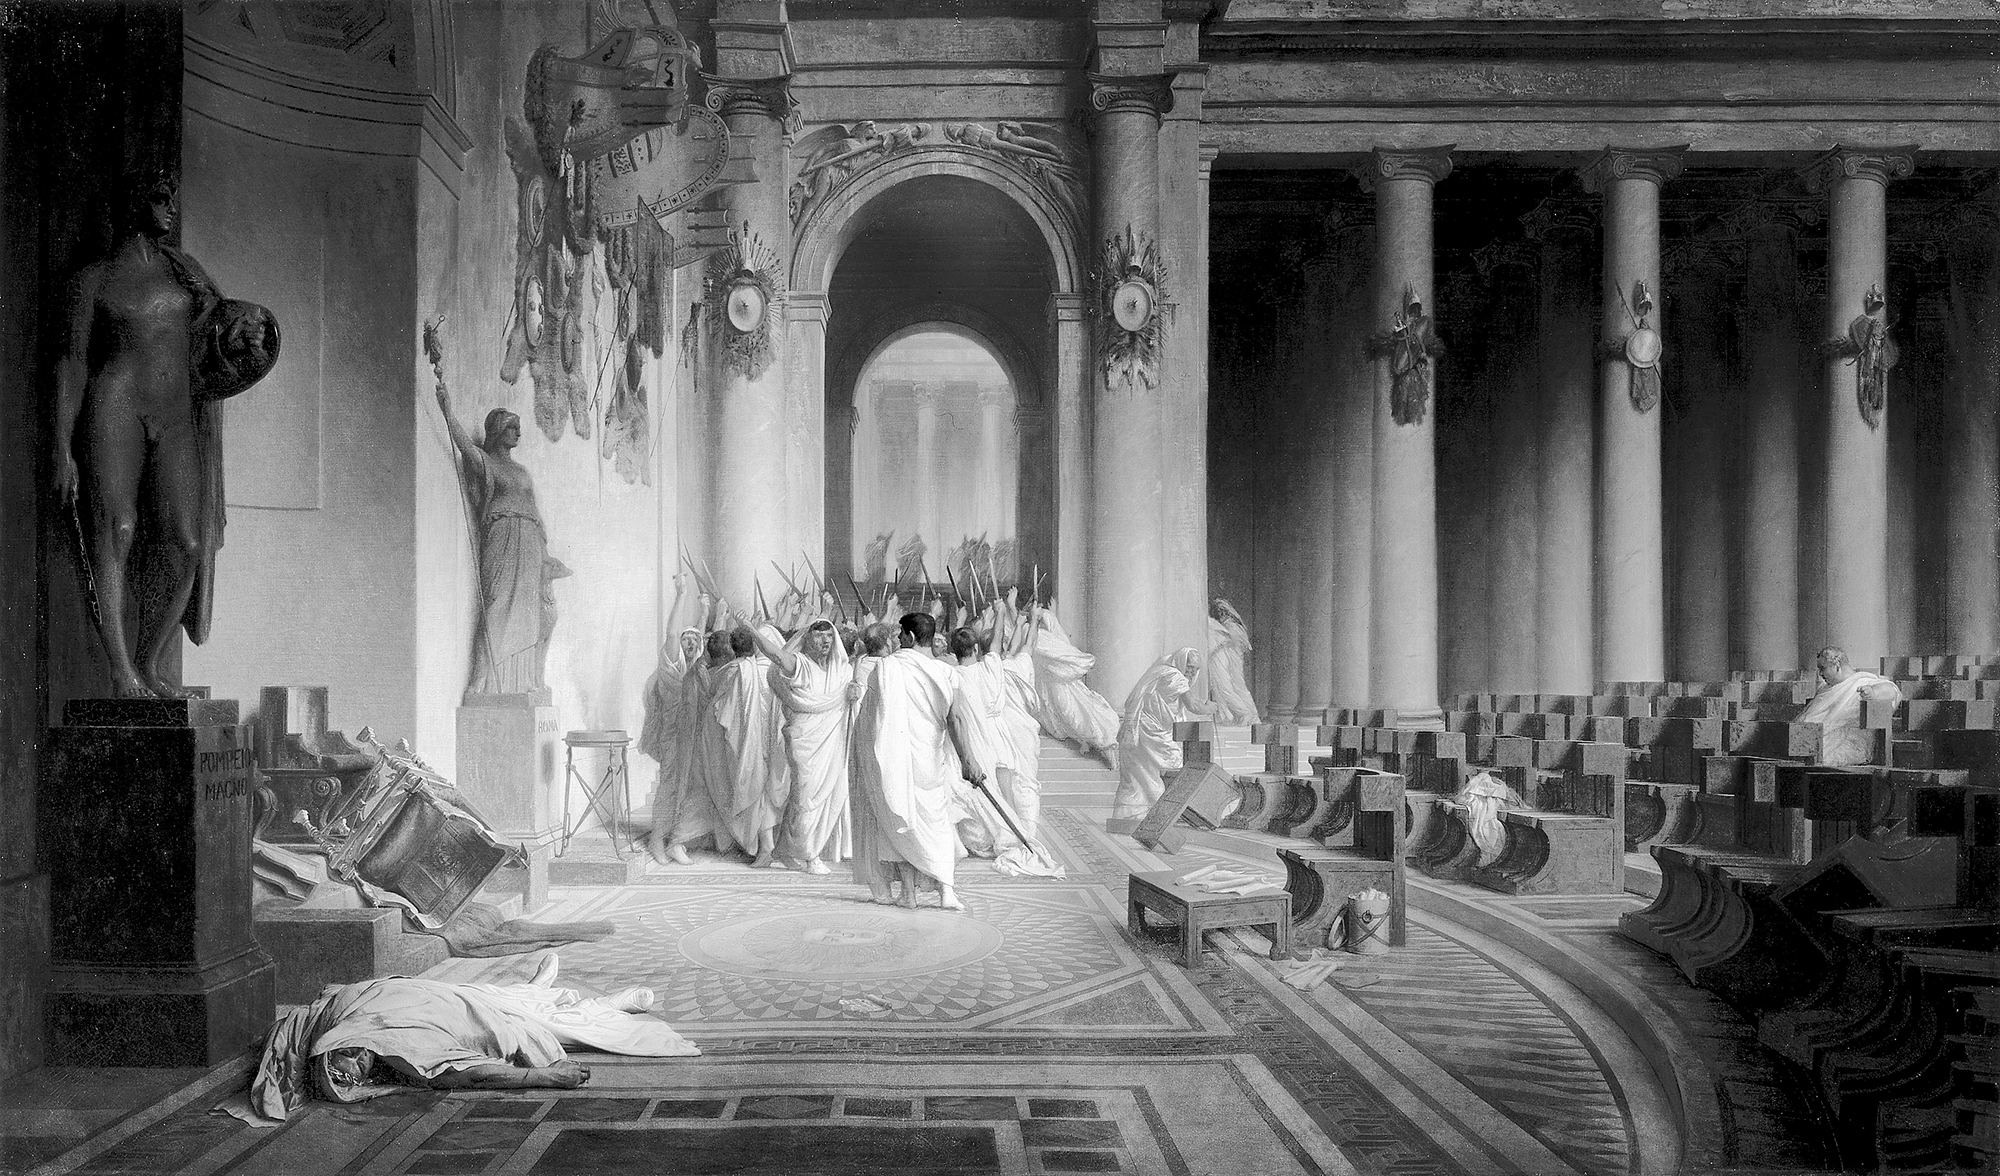 Photographs - The Death of Caesar: The Story of History's Most